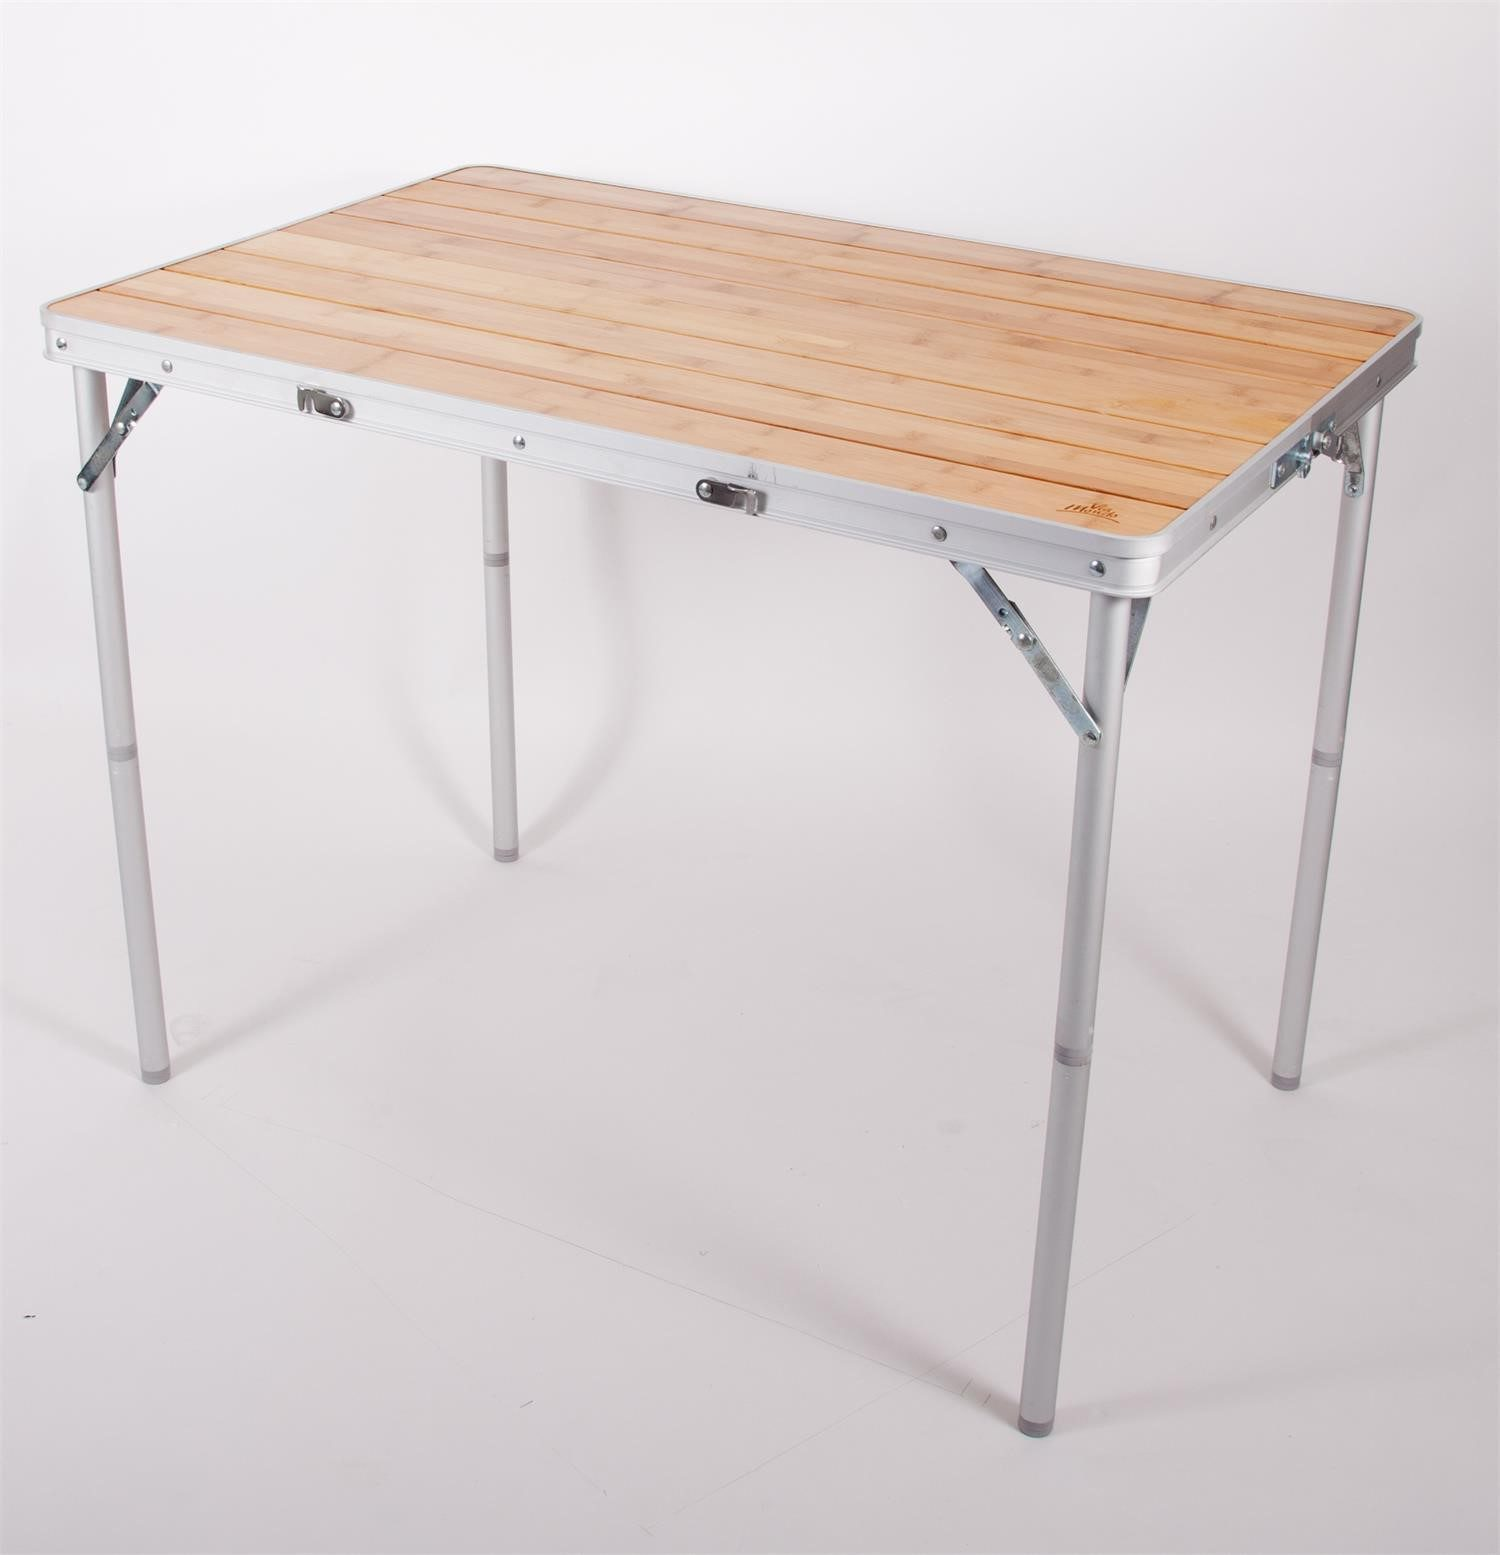 Norcamp Via Mondo Medium Bamboo Table